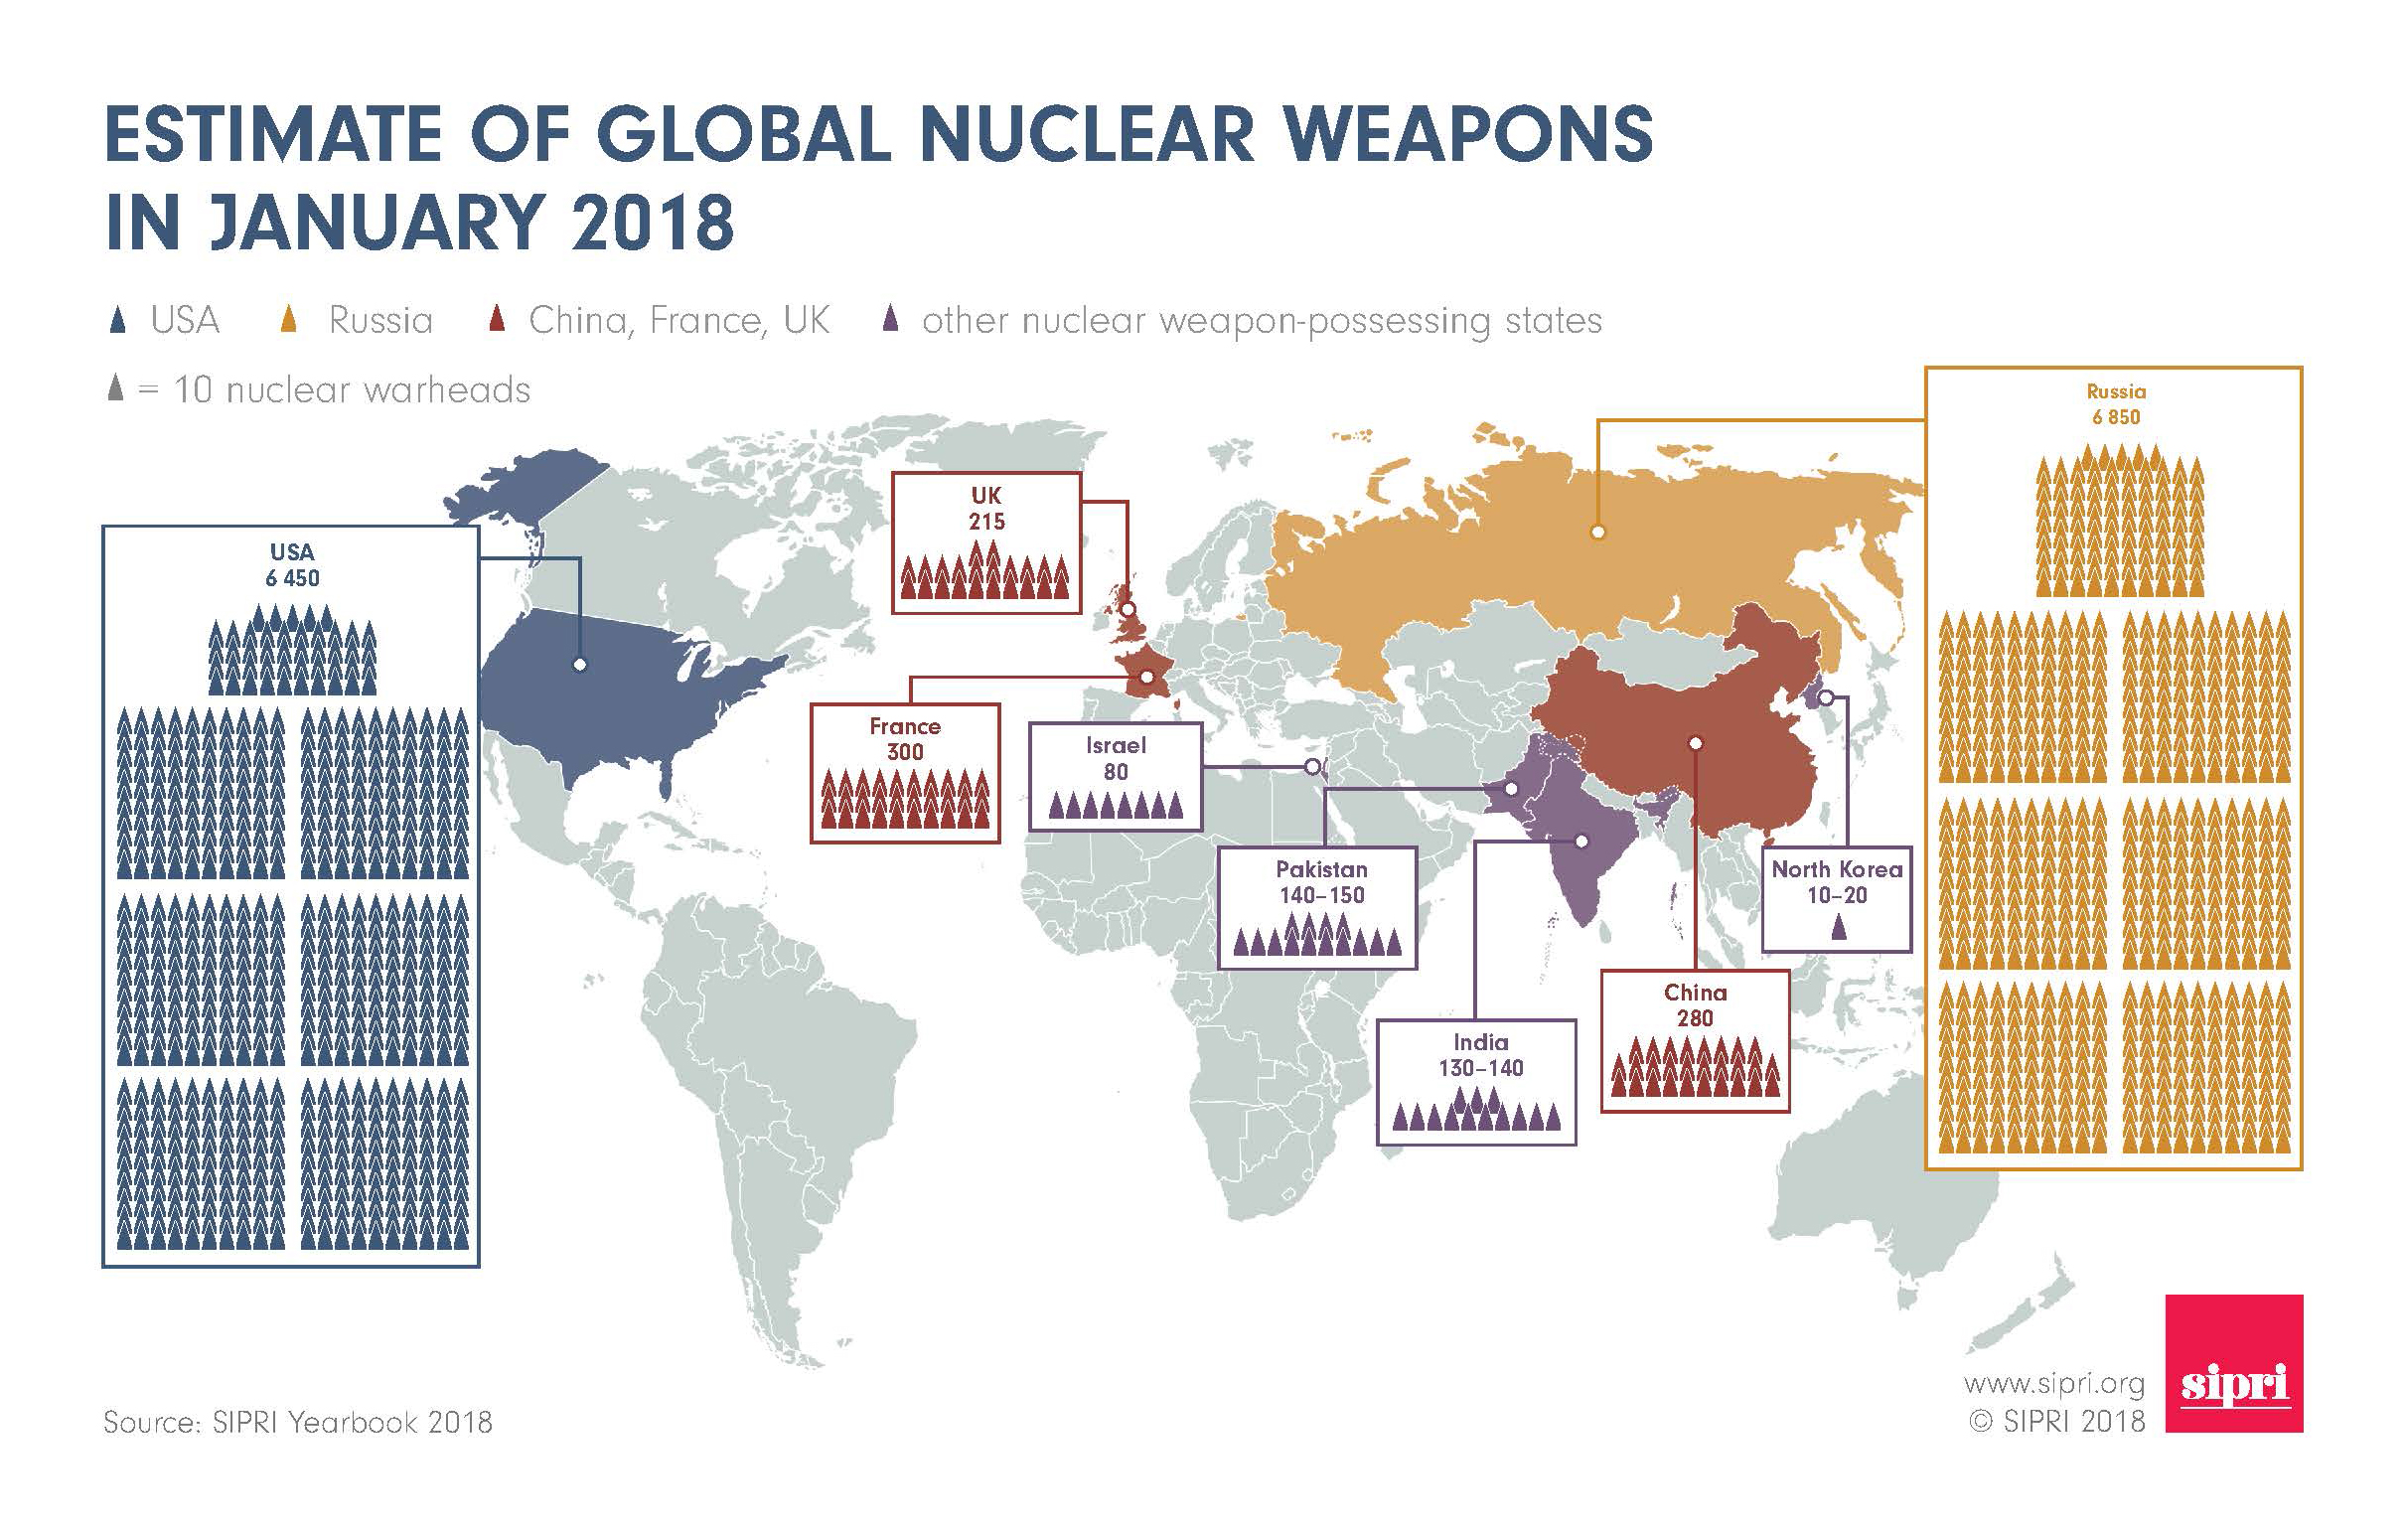 World nuclear forces: reductions remain slow as modernization continues